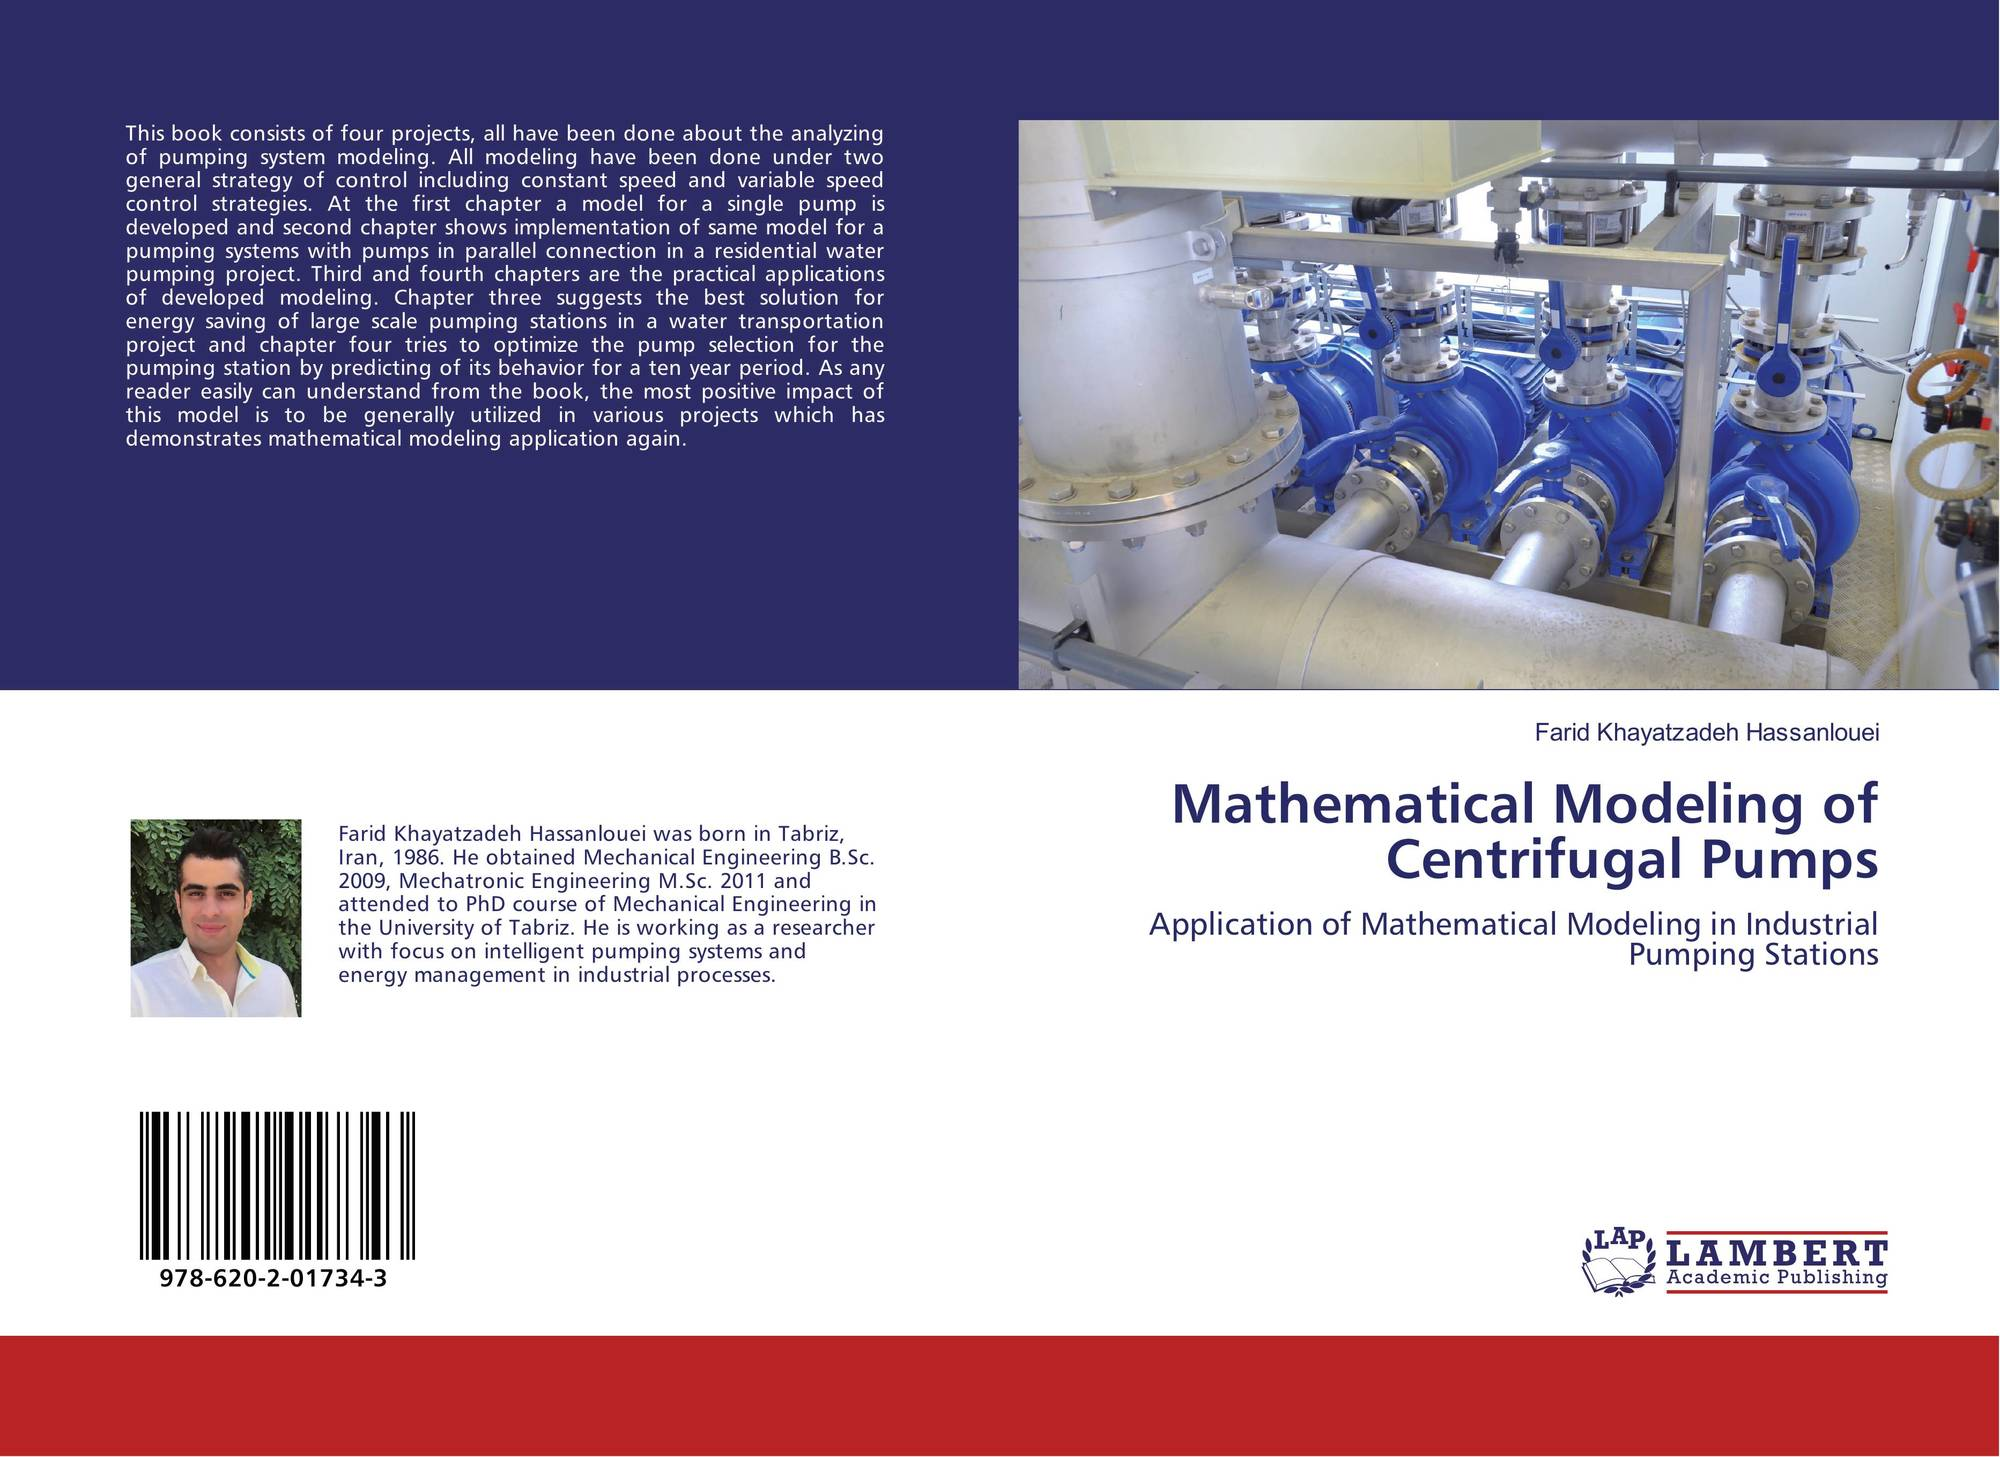 Mathematical Modeling of Centrifugal Pumps, 978-620-2-01734